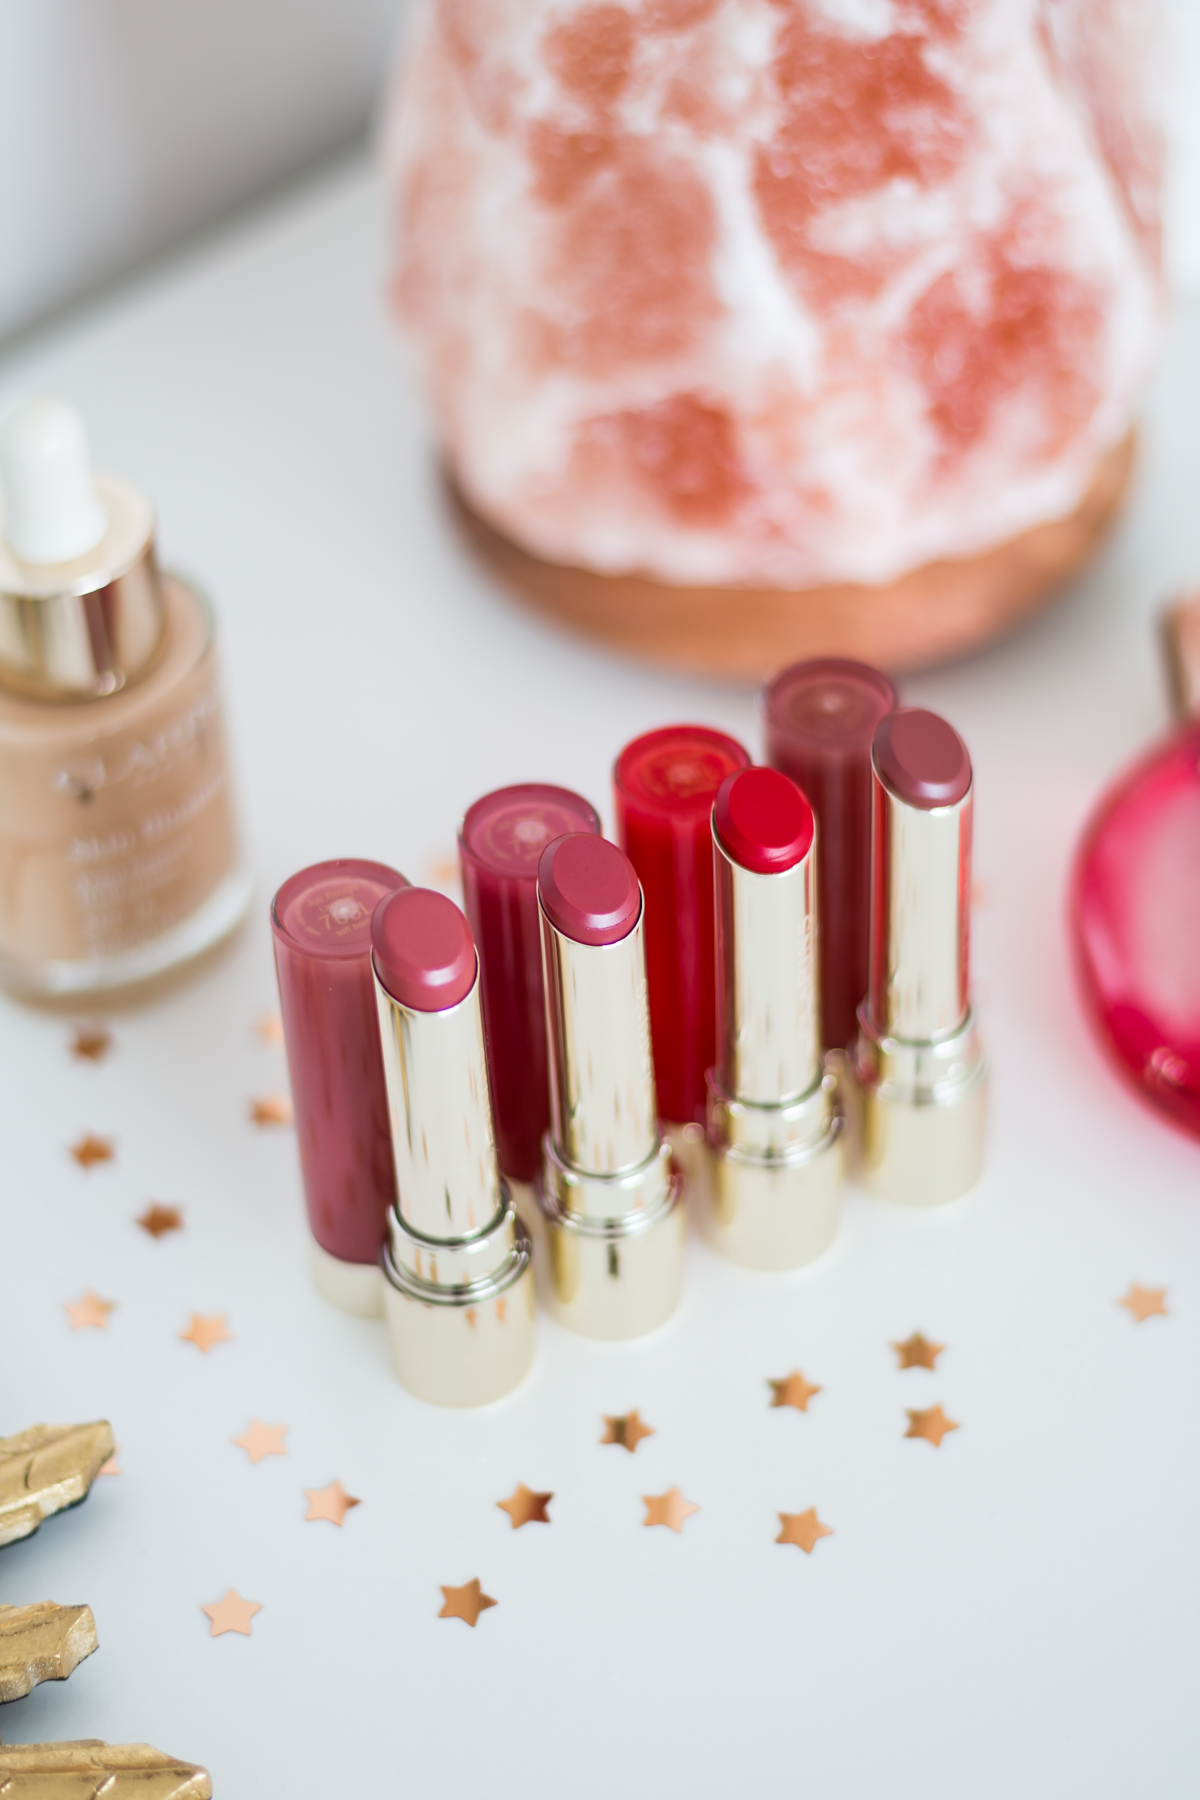 Clarins Joli Rouge Lip Lacquer Review and Swatches